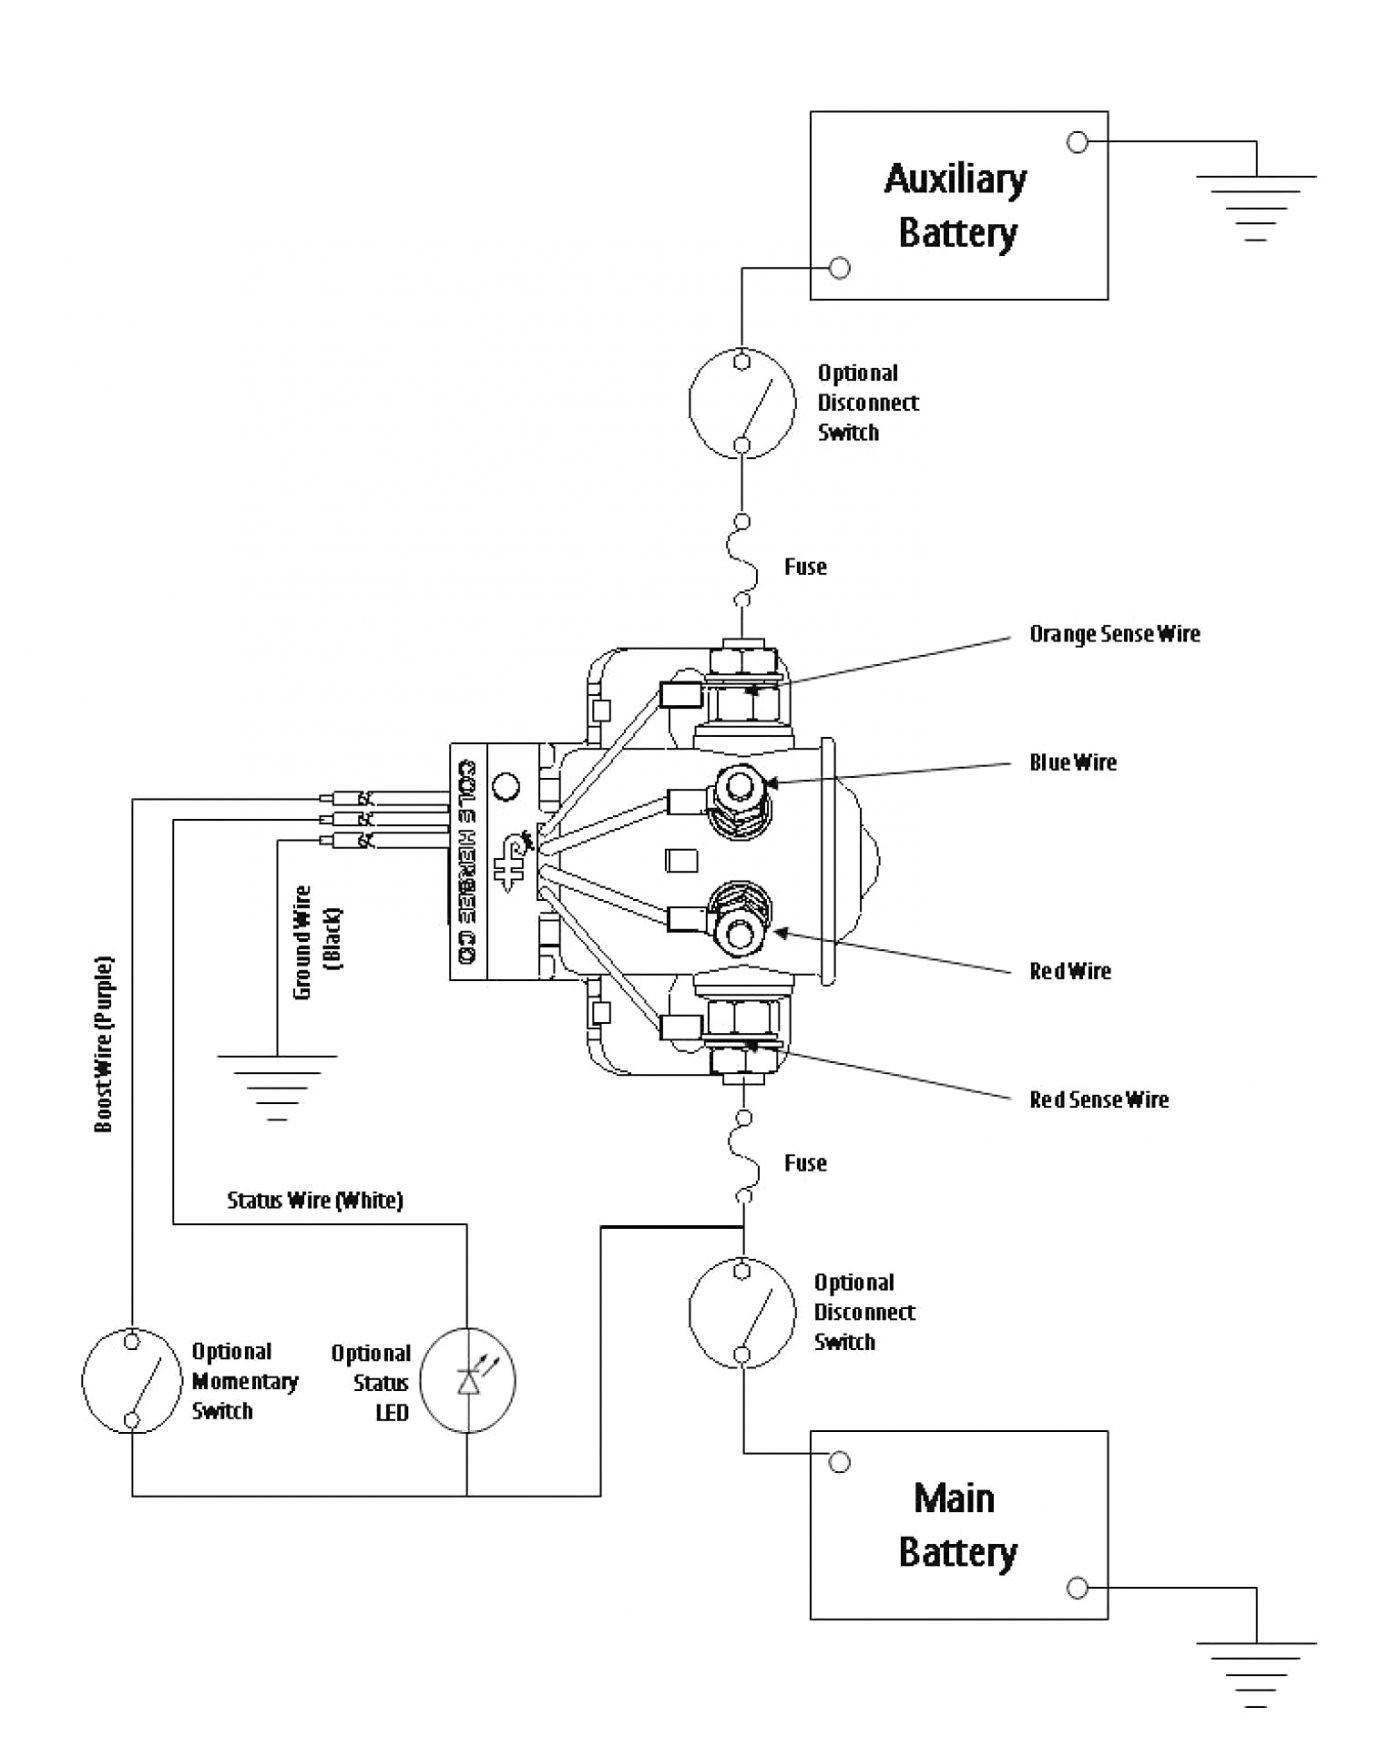 Throttle Valve Diagram Throttle Body Removal and Cleaning 2000 Chevy Tahoe Ideas 2003 Of Throttle Valve Diagram